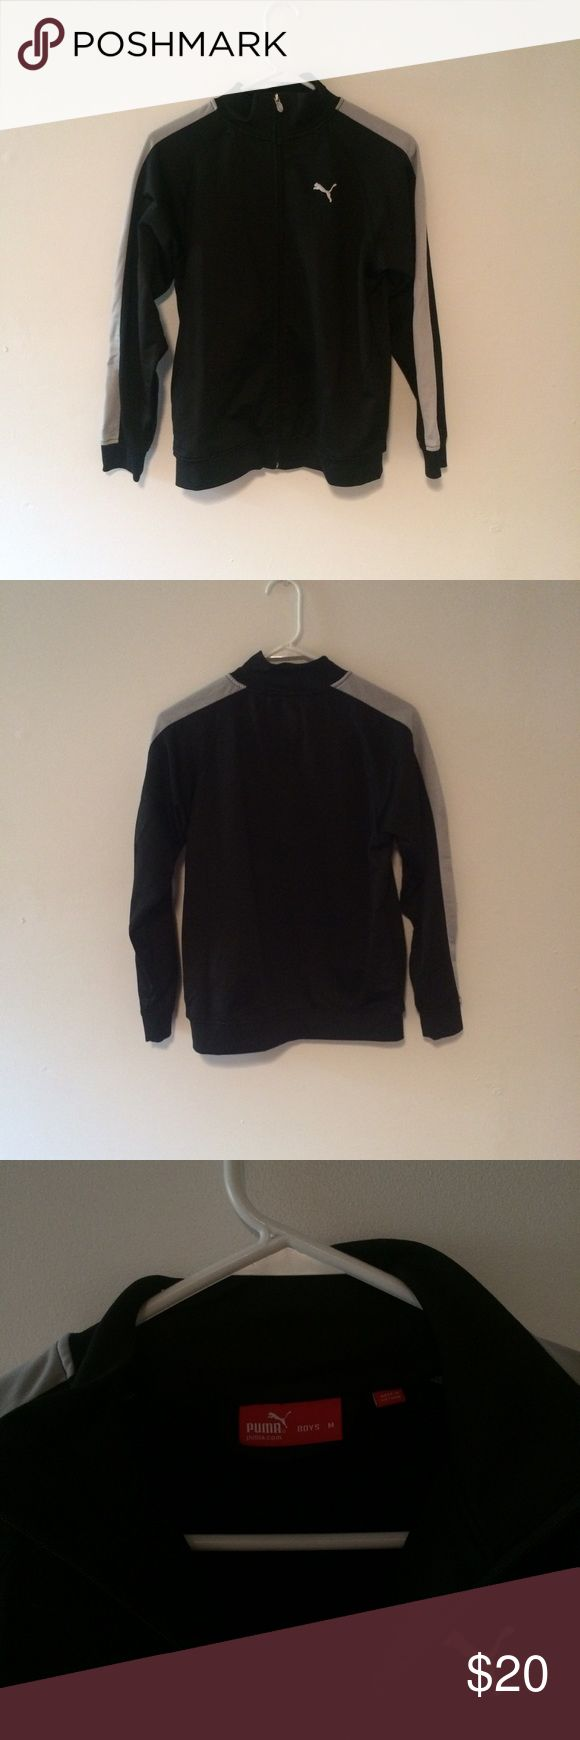 puma zip up it's a size medium in boys but fits a women's small. super cute puma zip up. black with silver on the arms. perfect condition Puma Jackets & Coats Performance Jackets